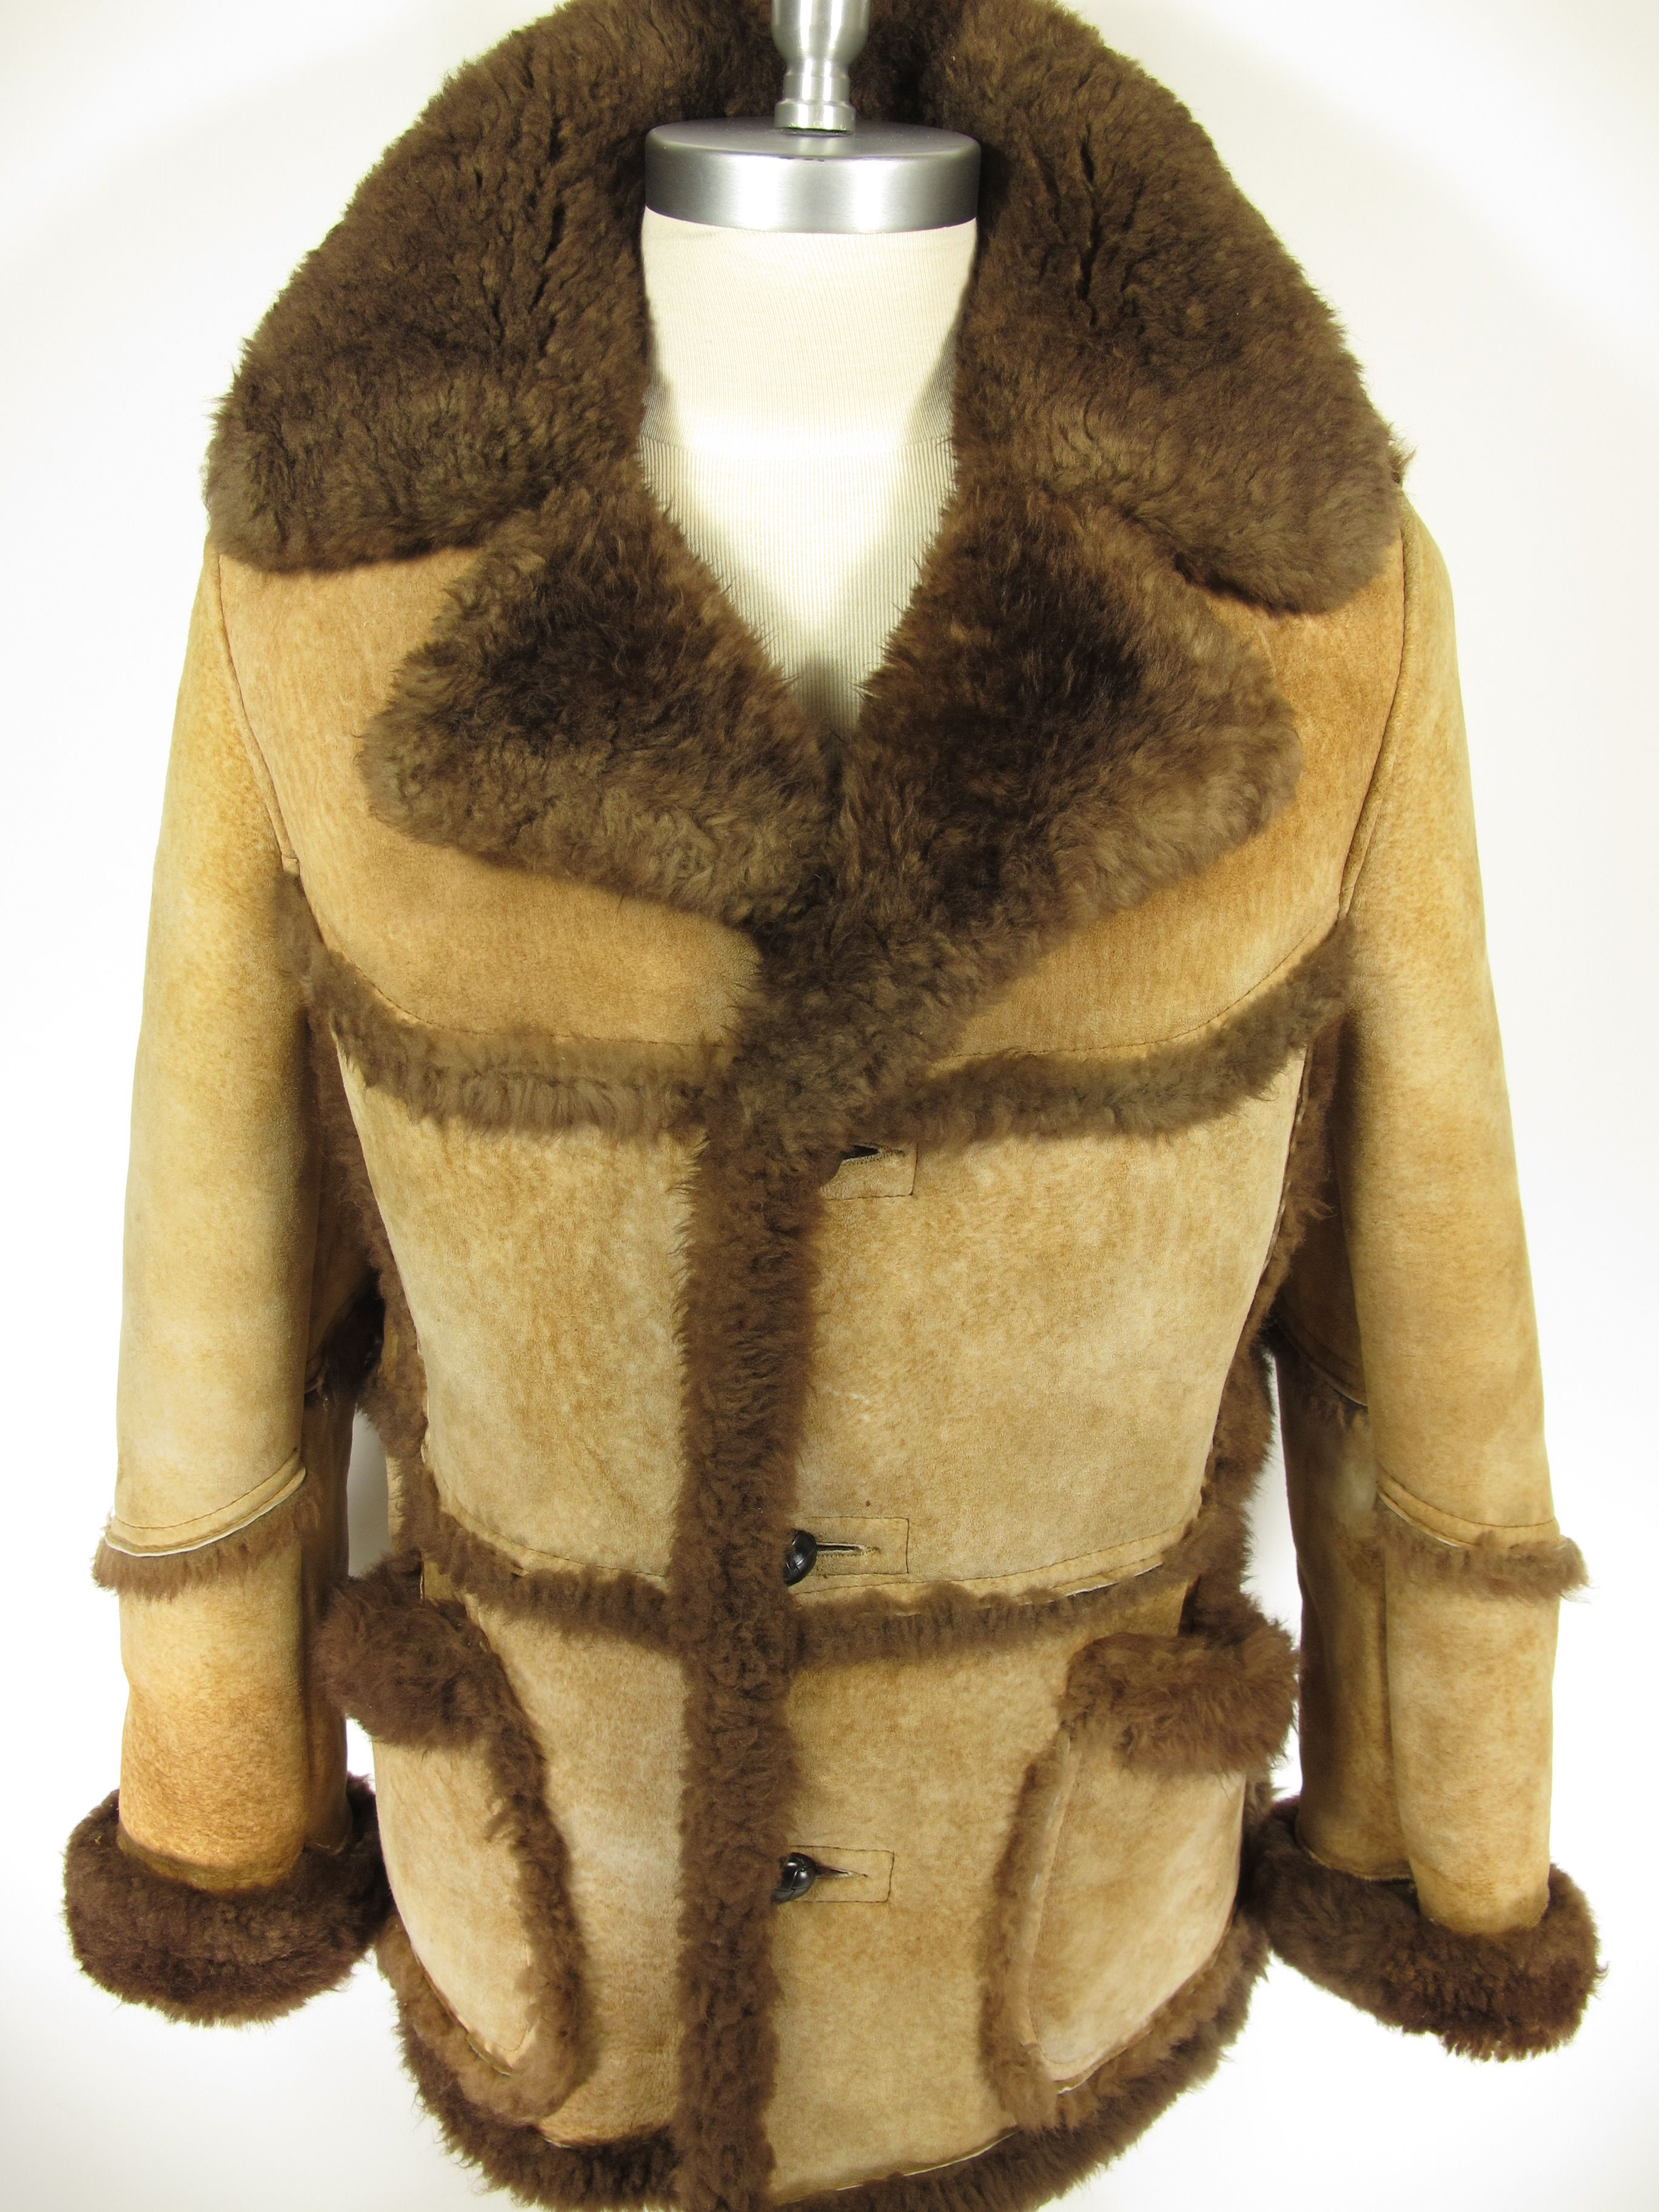 96694c6092 Vintage Silverwoods Shearling sheepskin jacket coat. Patch shearling  accents reflect the marlboro style quite nicely. Find many like it at The  Clothing ...